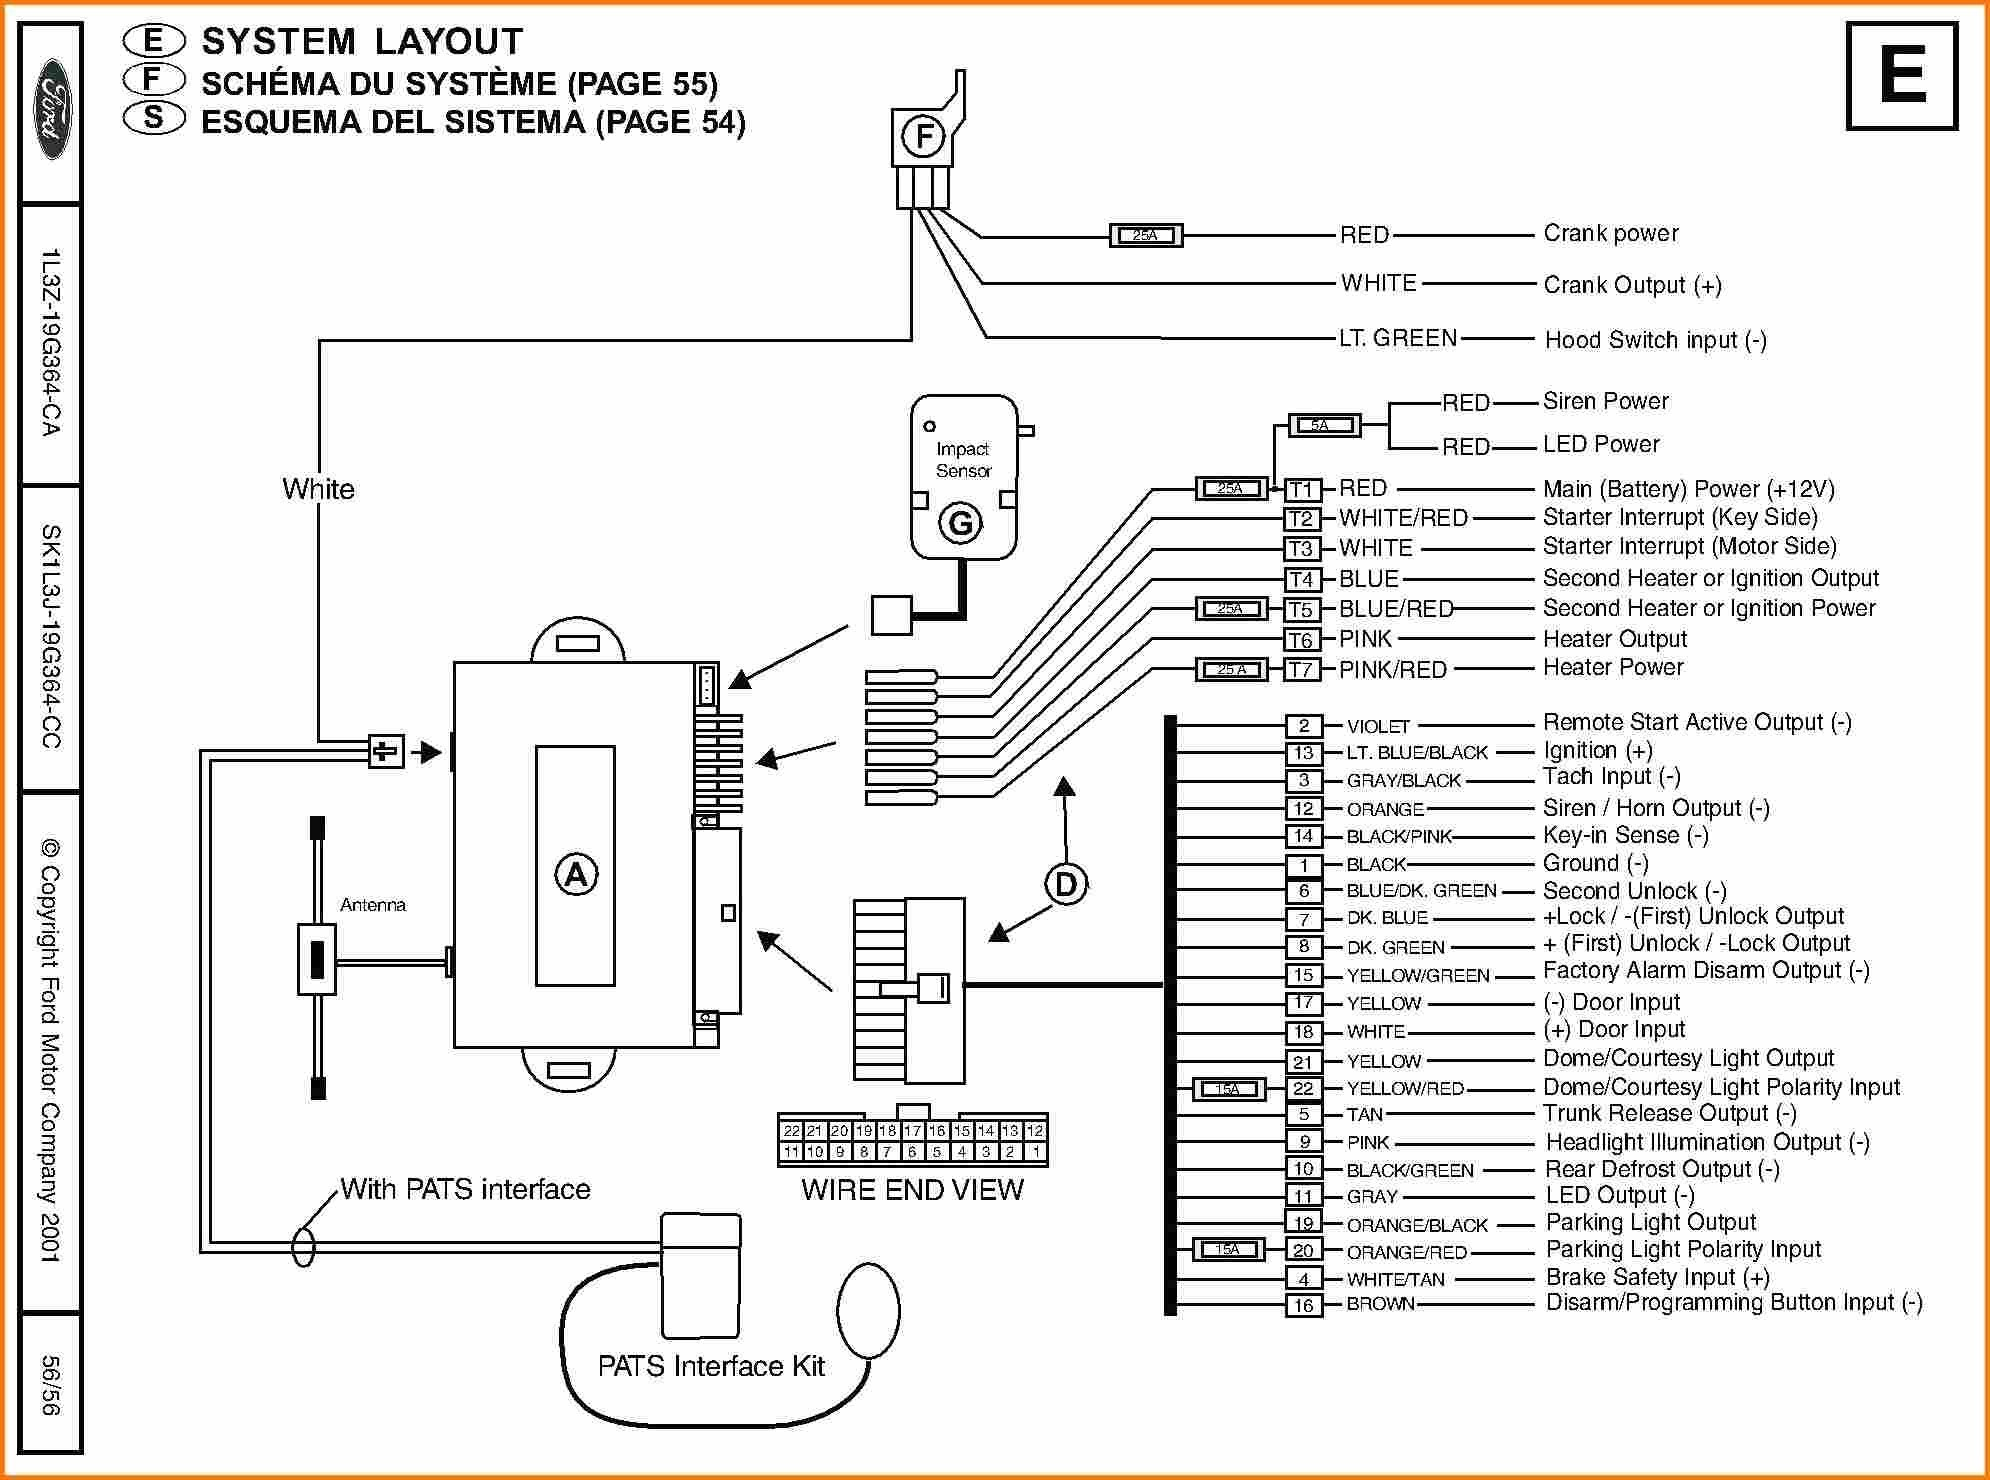 Remote Starter Wiring Diagrams Wiring Diagram Keyless Entry New Dball2 Inspirational 10 3 Of Remote Starter Wiring Diagrams